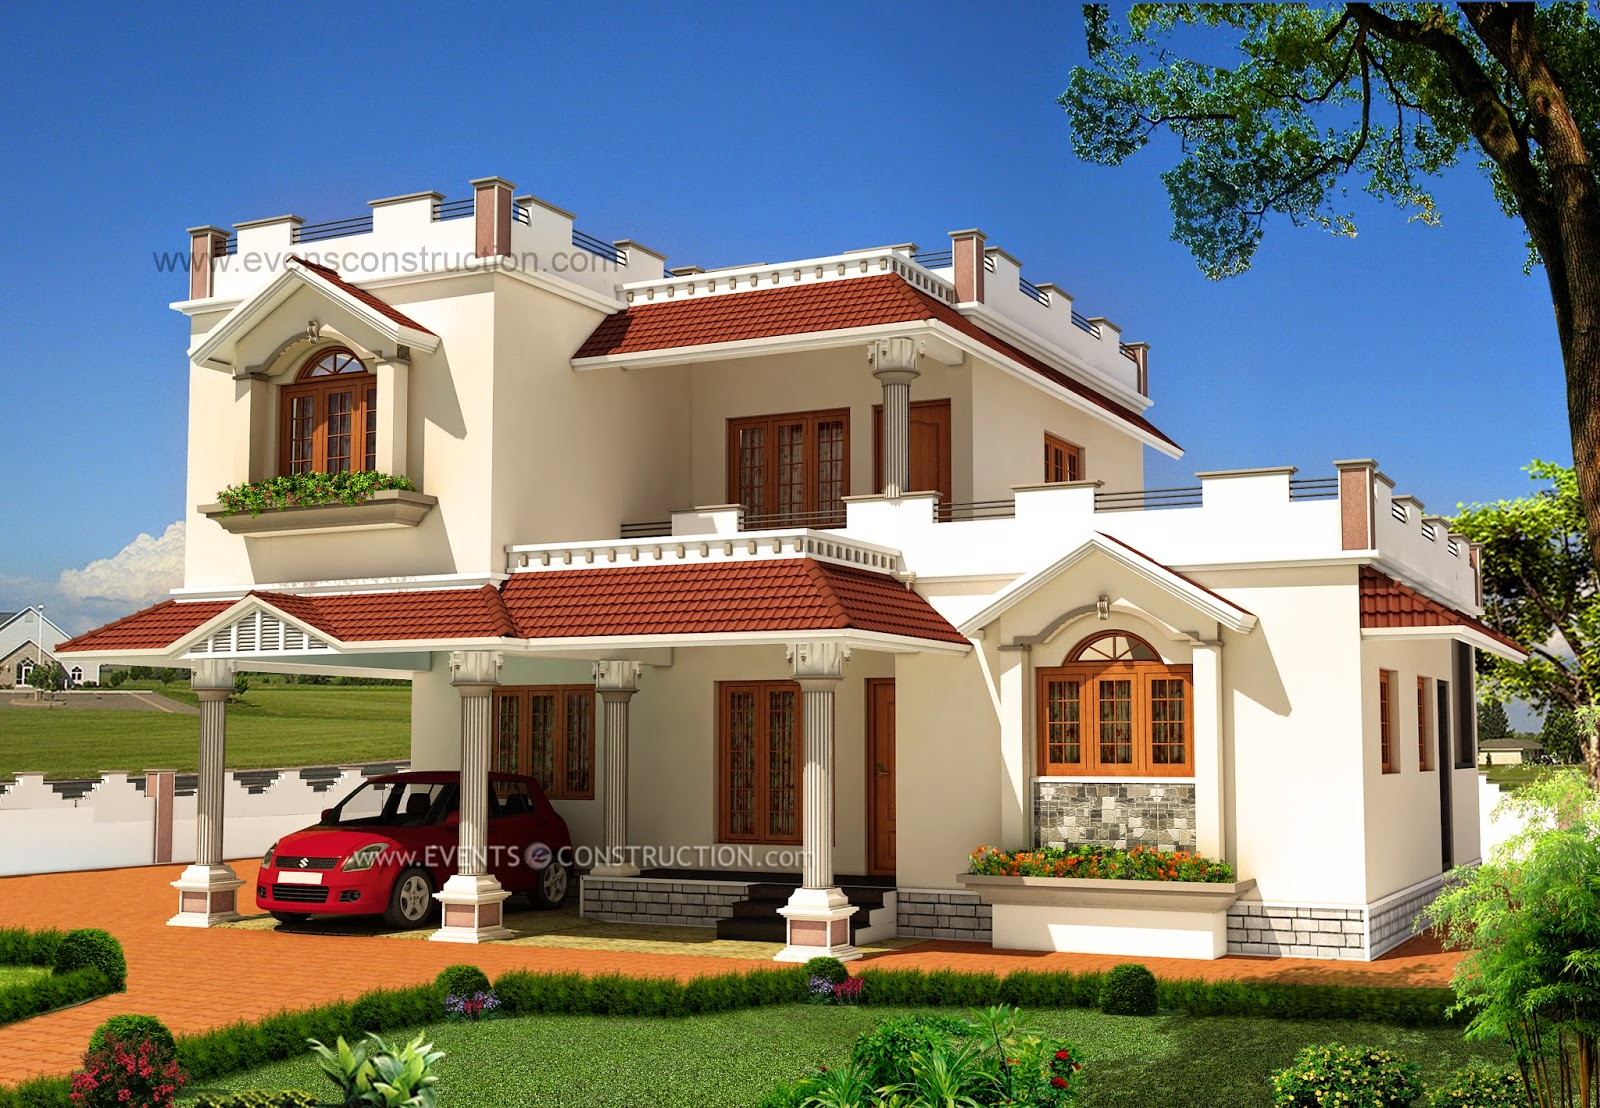 Evens construction pvt ltd exterior design of house in india Pictures of exterior home designs in india